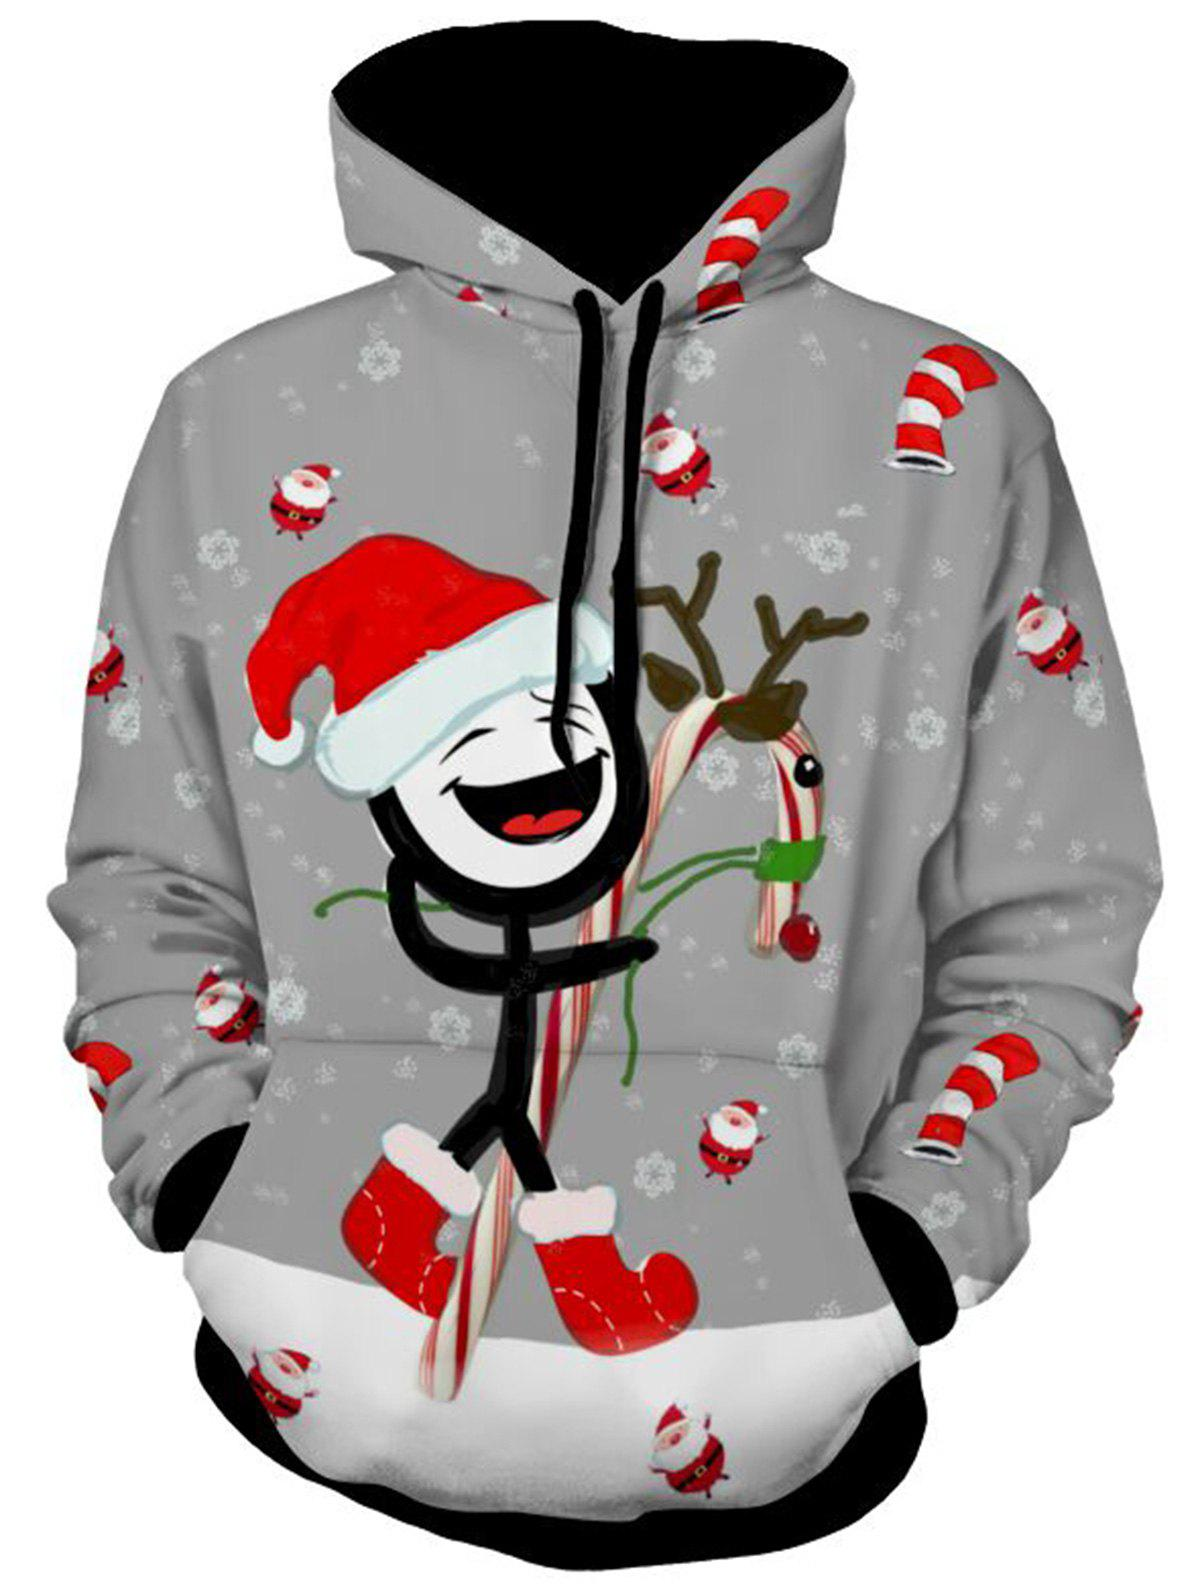 Printed Kangaroo Pocket Christmas HoodieMEN<br><br>Size: M; Color: GRAY; Material: Polyester; Clothes Type: Hoodie; Shirt Length: Regular; Sleeve Length: Full; Style: Casual; Patterns: Cartoon; Thickness: Regular; Occasion: Casual; Weight: 0.5900kg; Package Contents: 1 x Hoodie;